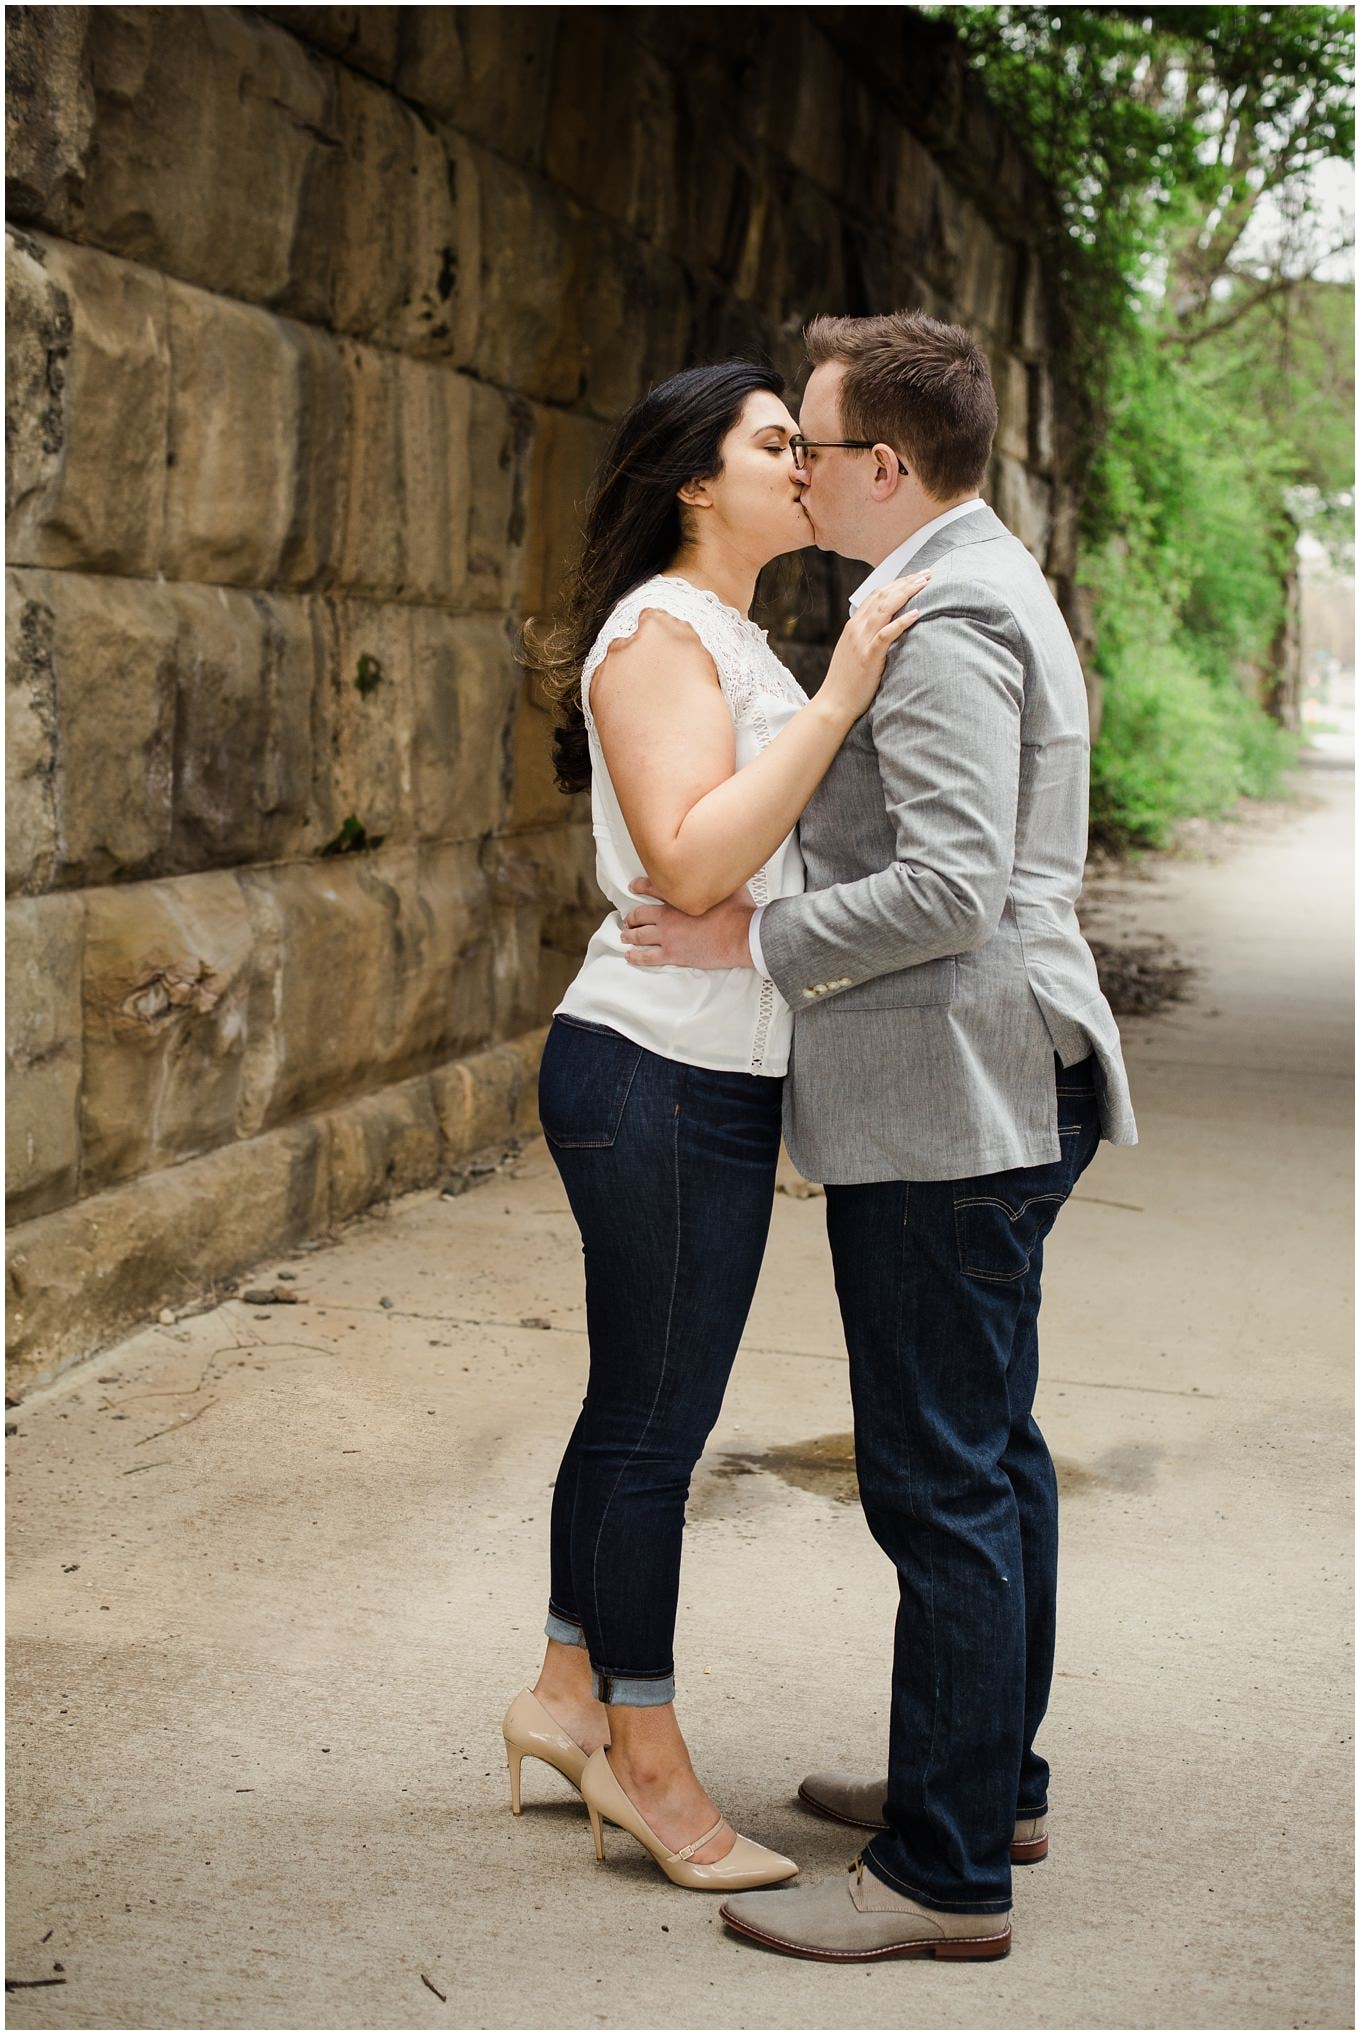 adam lowe photography, wedding, bride and groom, engagement session, columbus, ohio, style, modern, fine art wedding, fashion, stylish, photography, photography